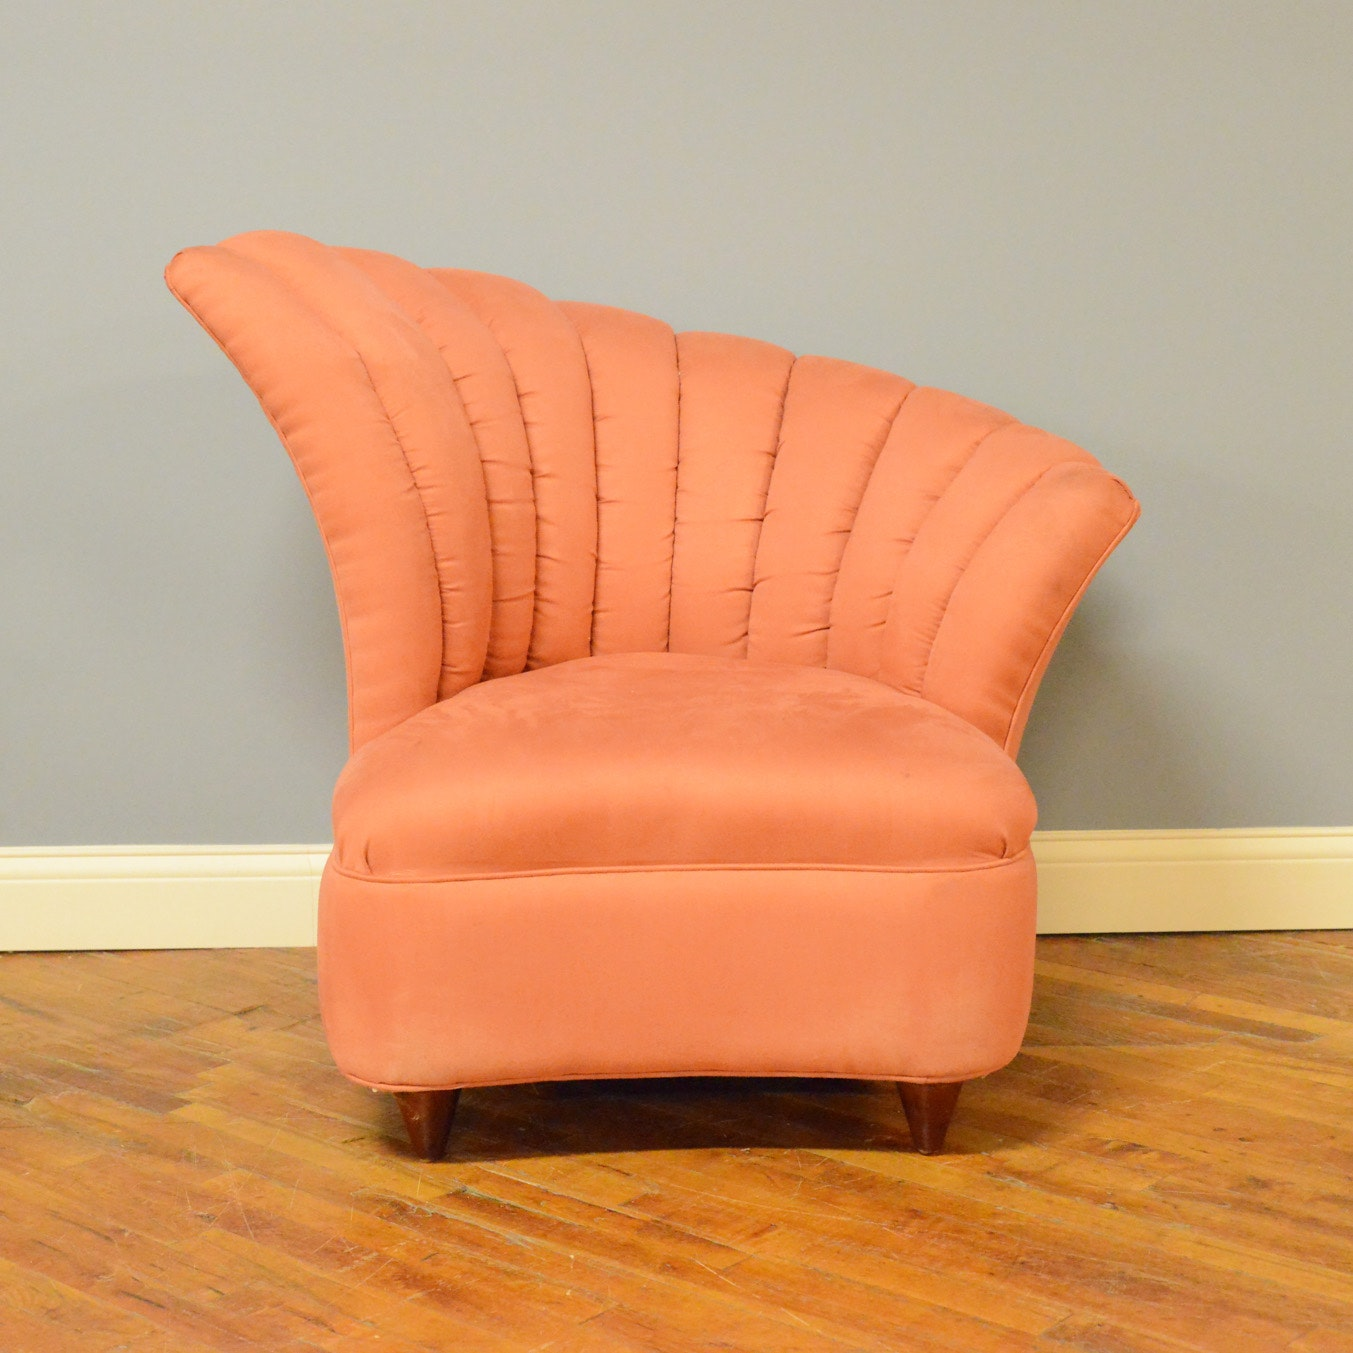 Excellent Vintage Asymmetrical Channel Back Pink Upholstered Chair : EBTH UB57